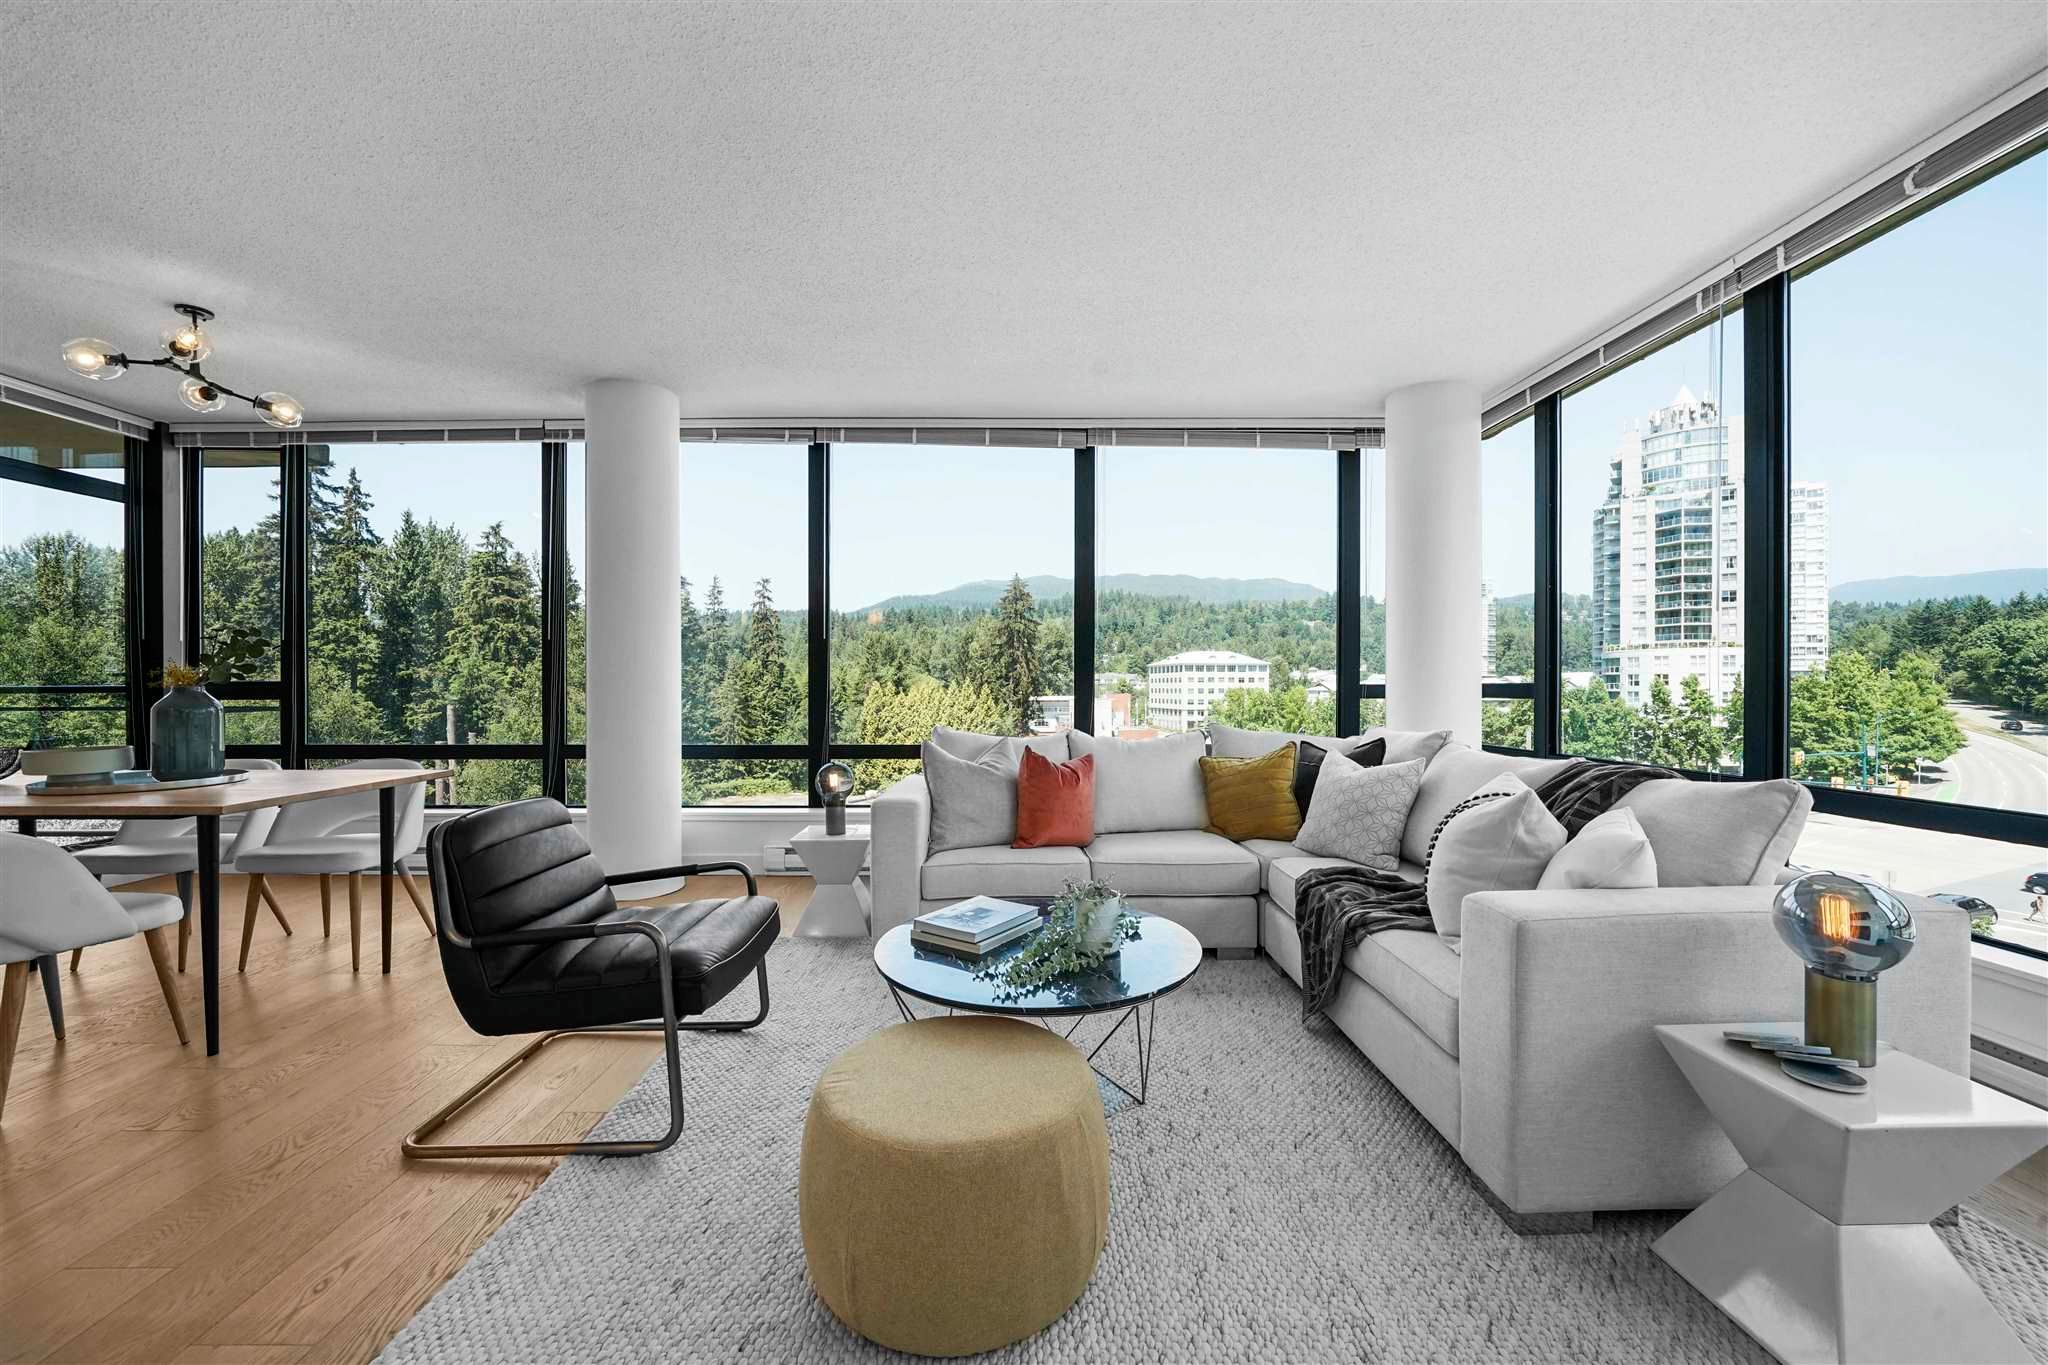 """Main Photo: 408 110 BREW Street in Port Moody: Port Moody Centre Condo for sale in """"ARIA AT SUTTERBROOK"""" : MLS®# R2599484"""